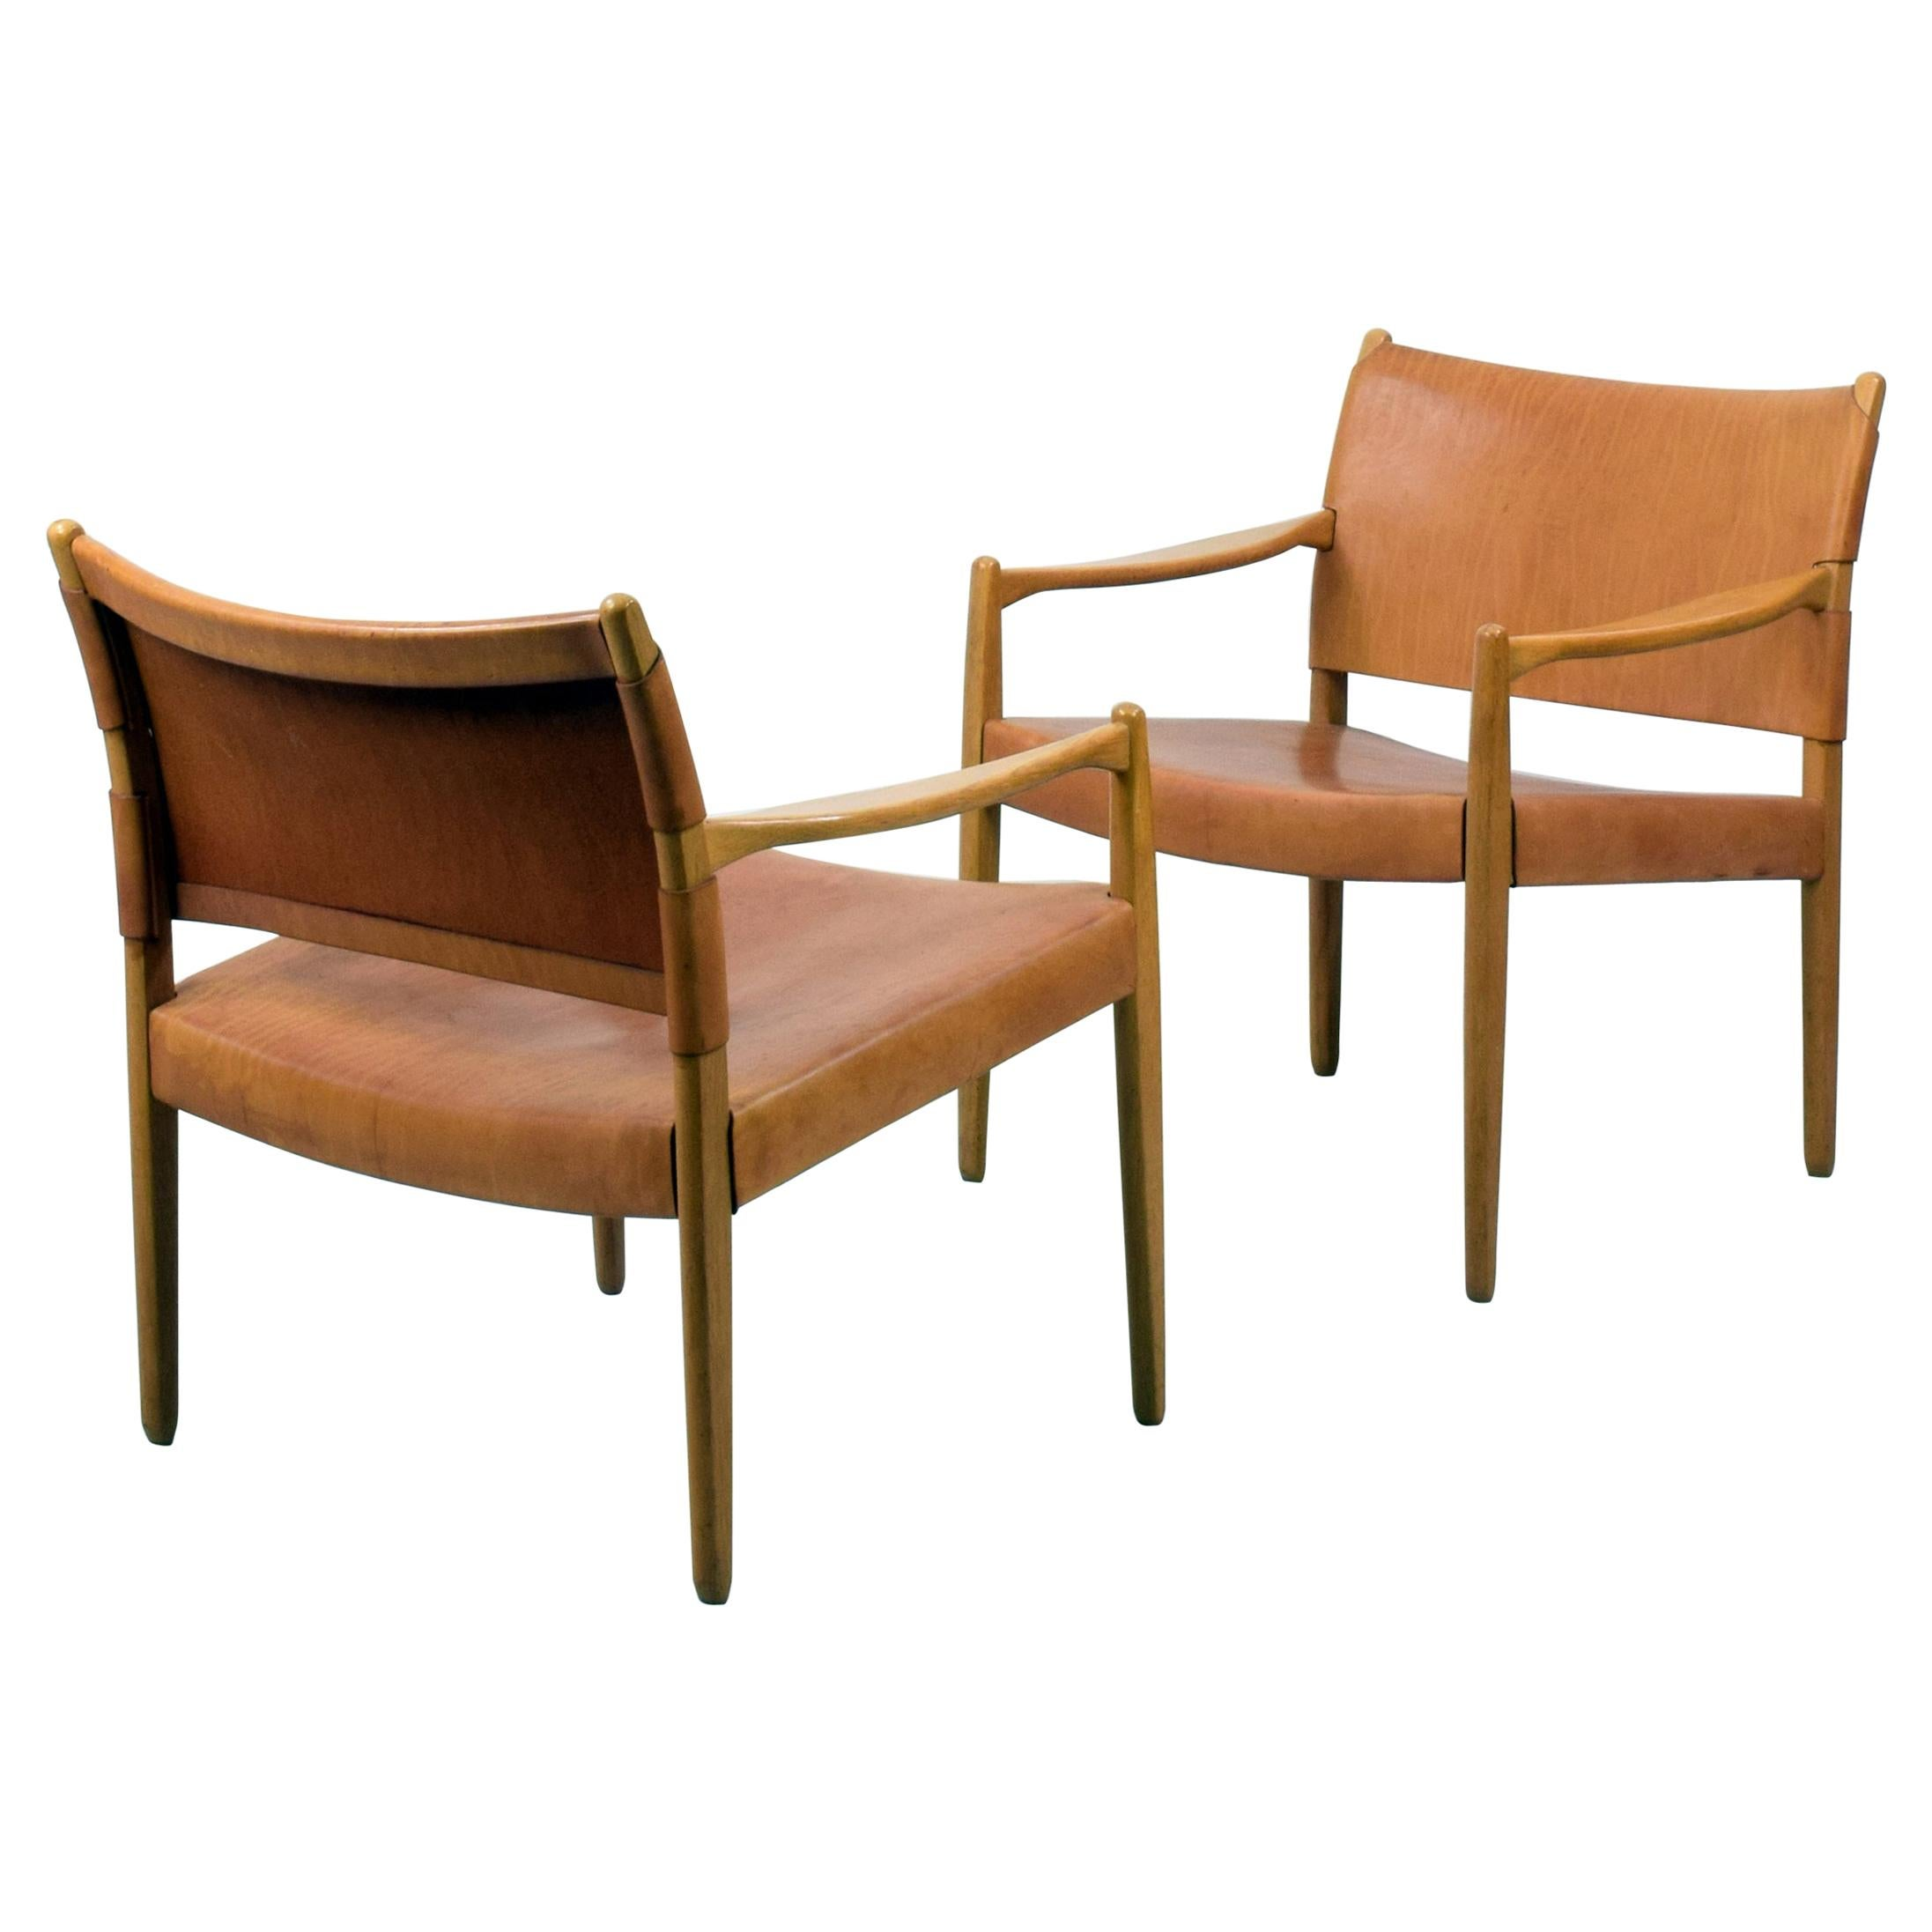 Per-Olof Scotte, 'Premiär-69' Pair of Armchairs for Möbel Ikea, Designed 1967